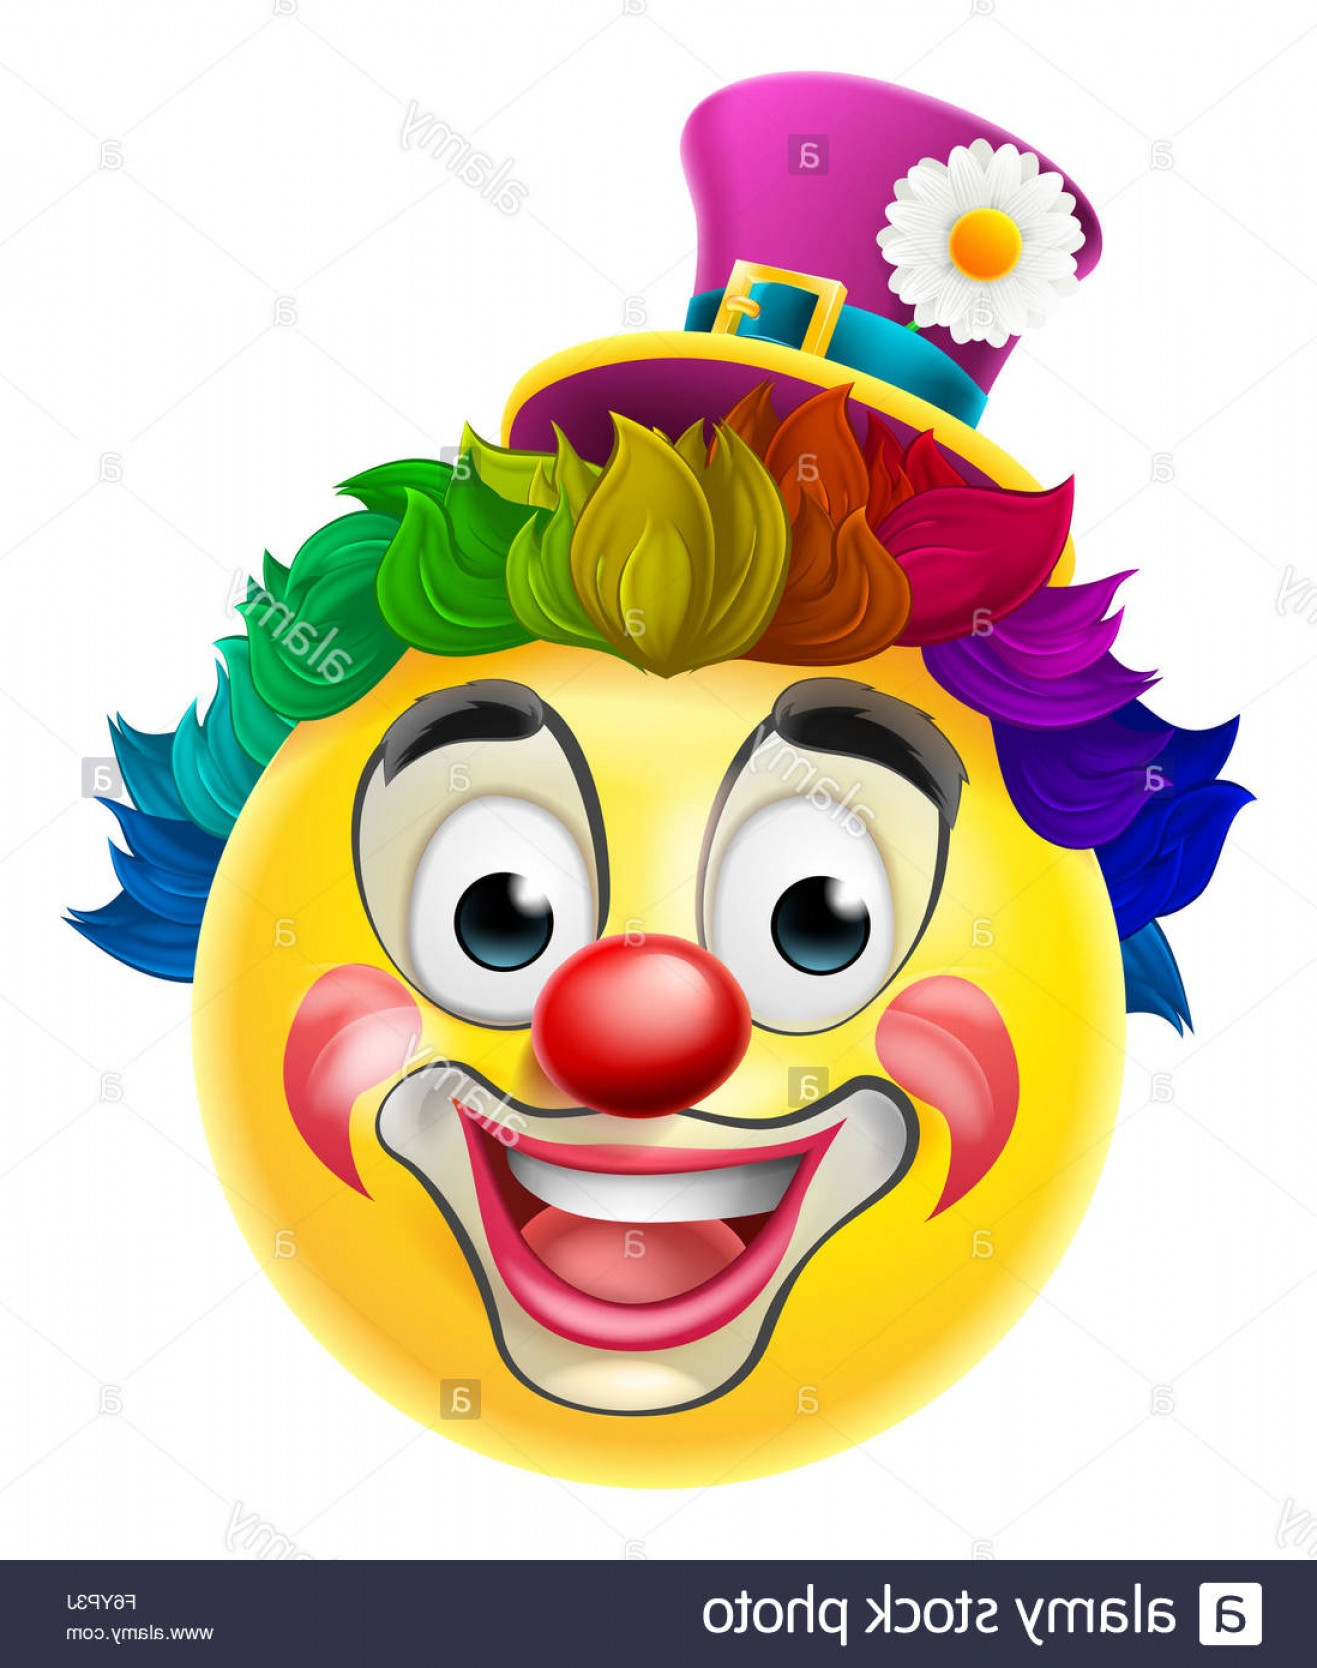 Rainbow Face Emoji Vector: Stock Photo A Clown Cartoon Emoji Emoticon Smiley Face Character With A Red Nose